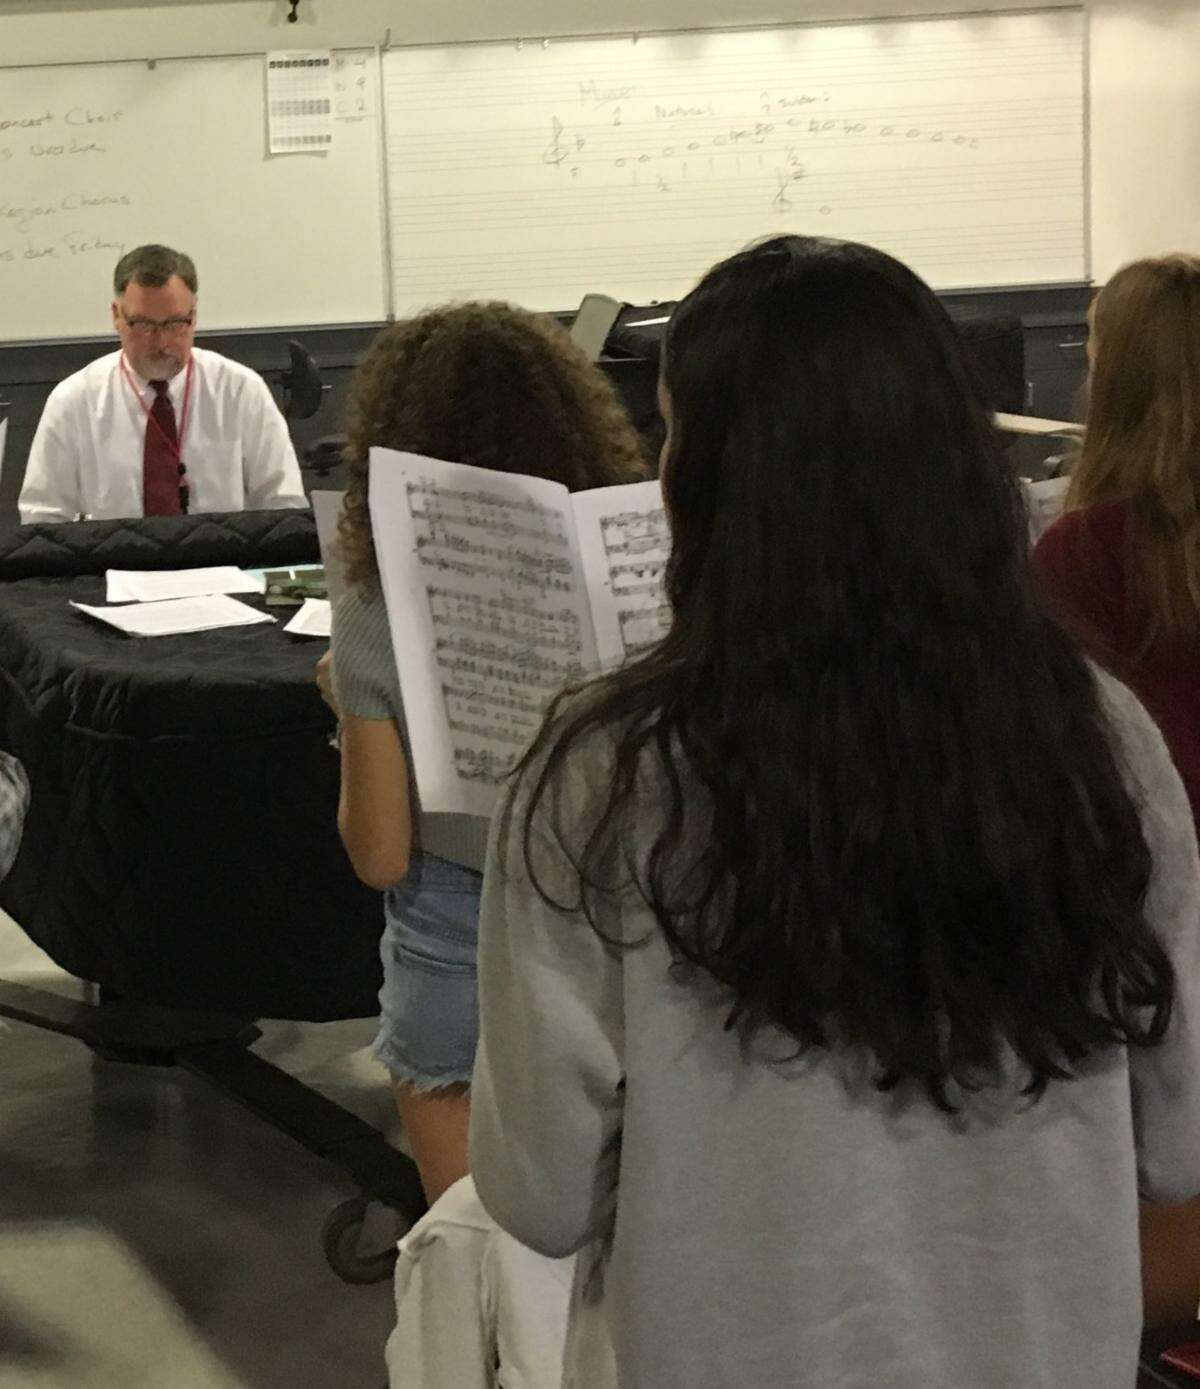 Patrick Taylor, director of Choirs at Greenwich High School, rehearses for the Greenwich Symphony concert November 23-24. The 80 singers have been working hard with the music and the German text of